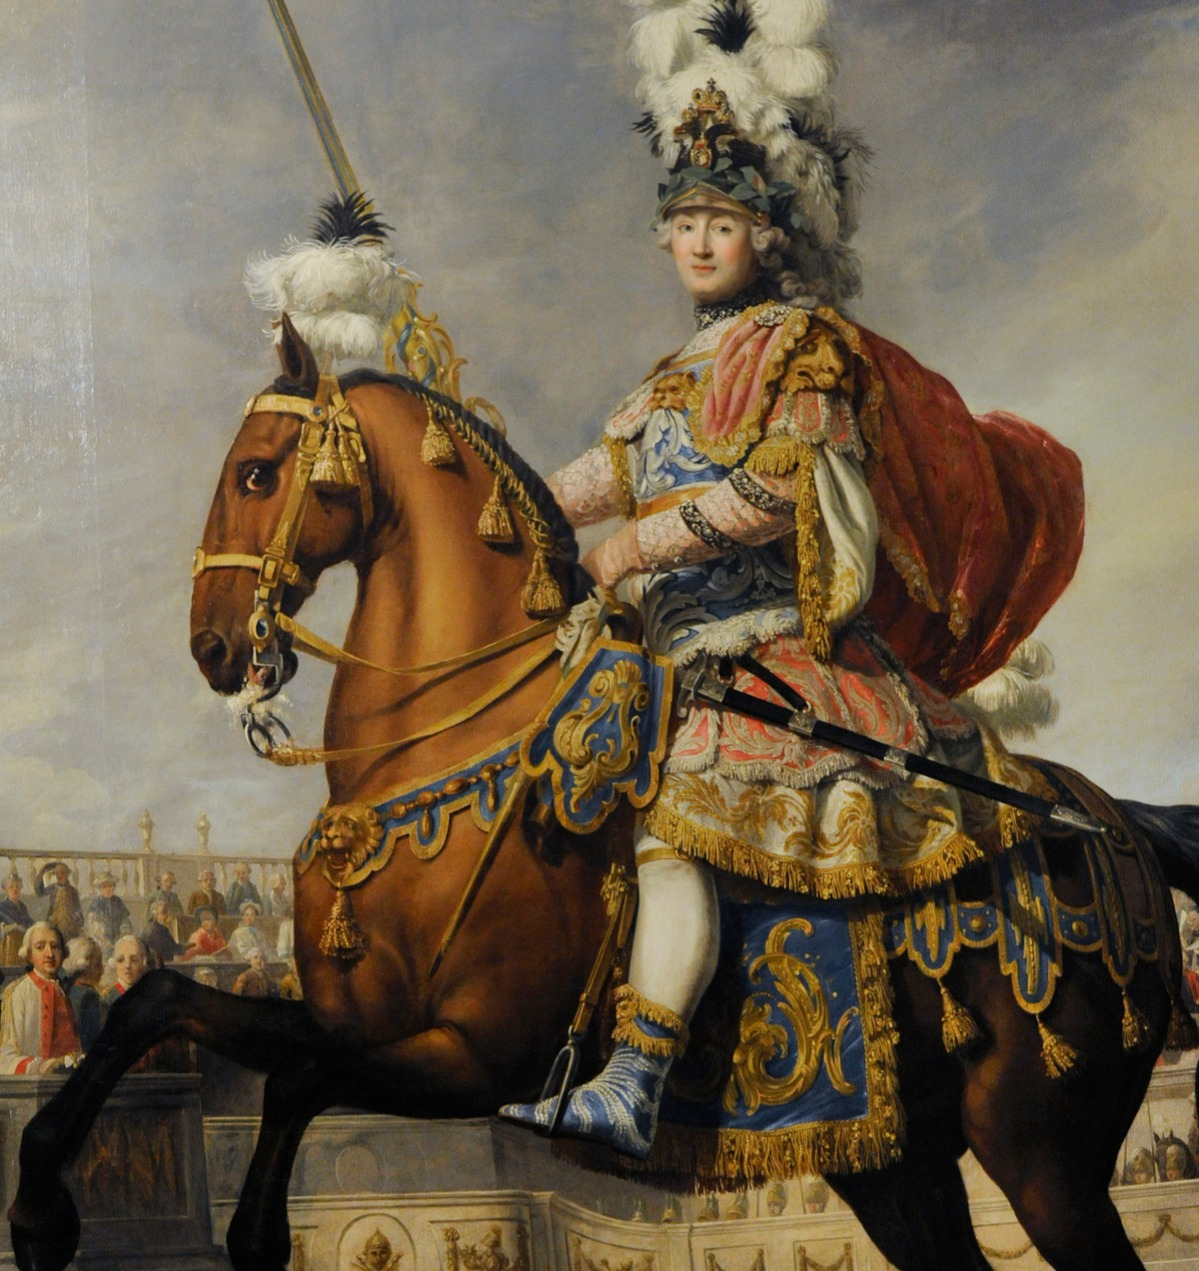 catherine the great loved this particular portrait with a horse